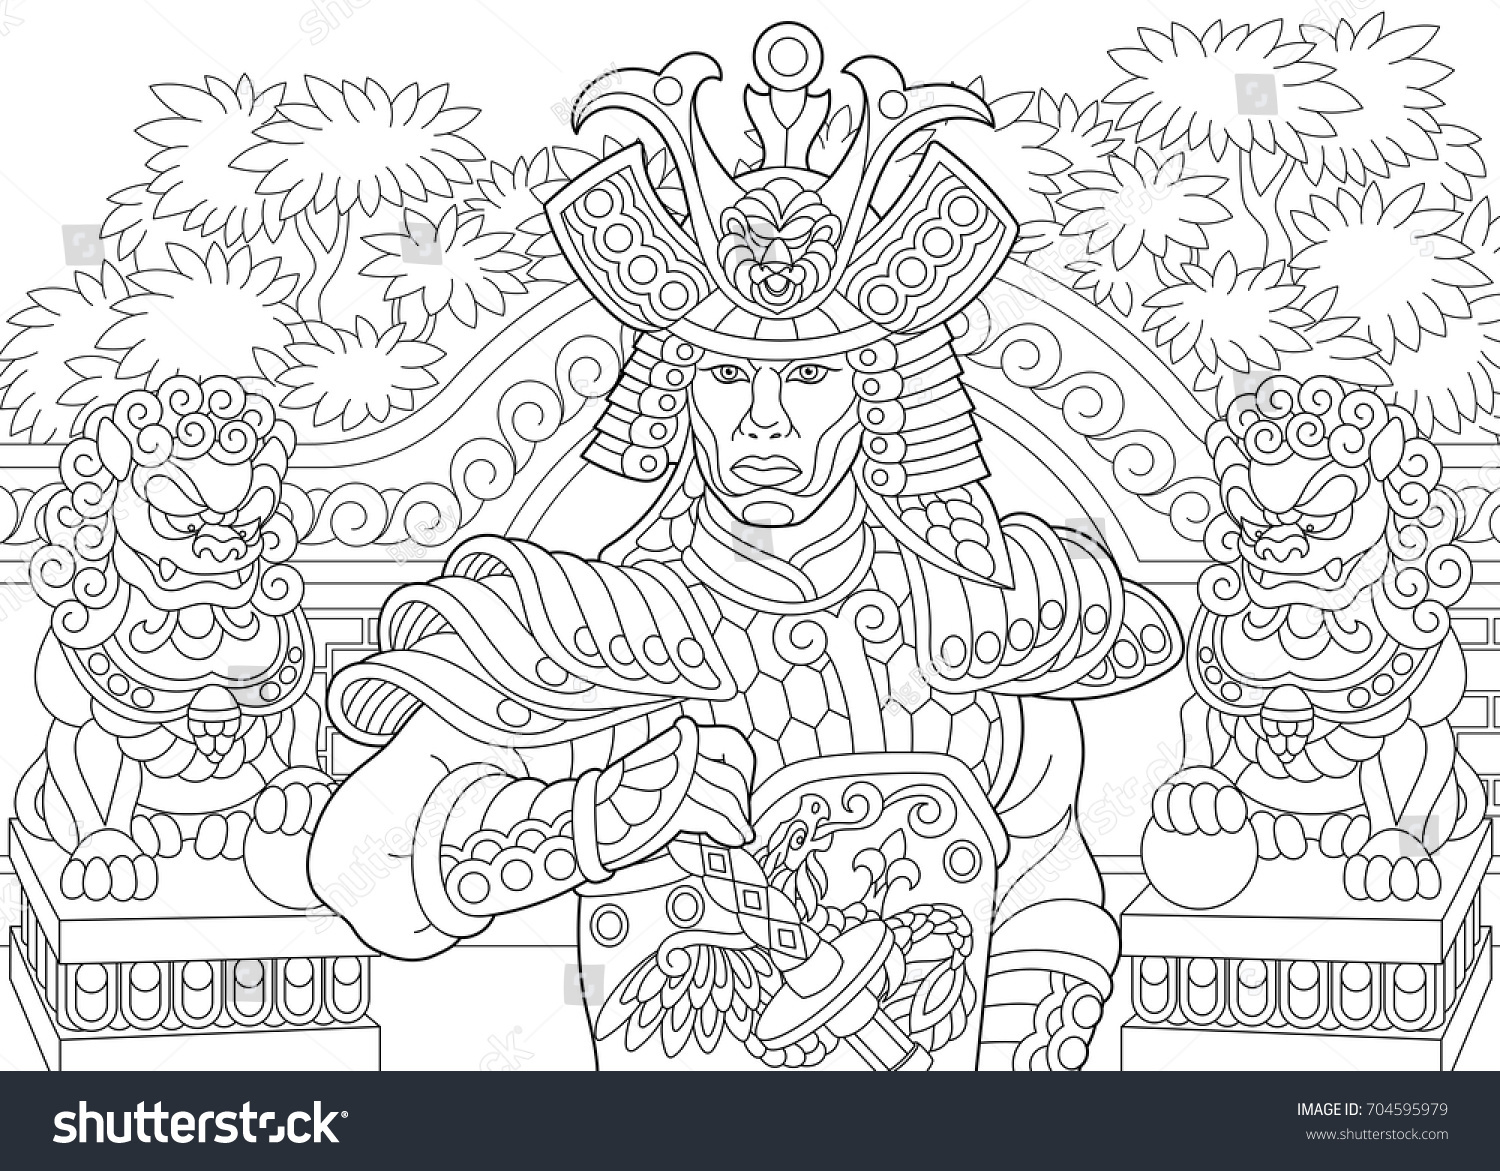 Coloring Page Of Japanese Samurai With Lion Statues On The Background Freehand Sketch Drawing For